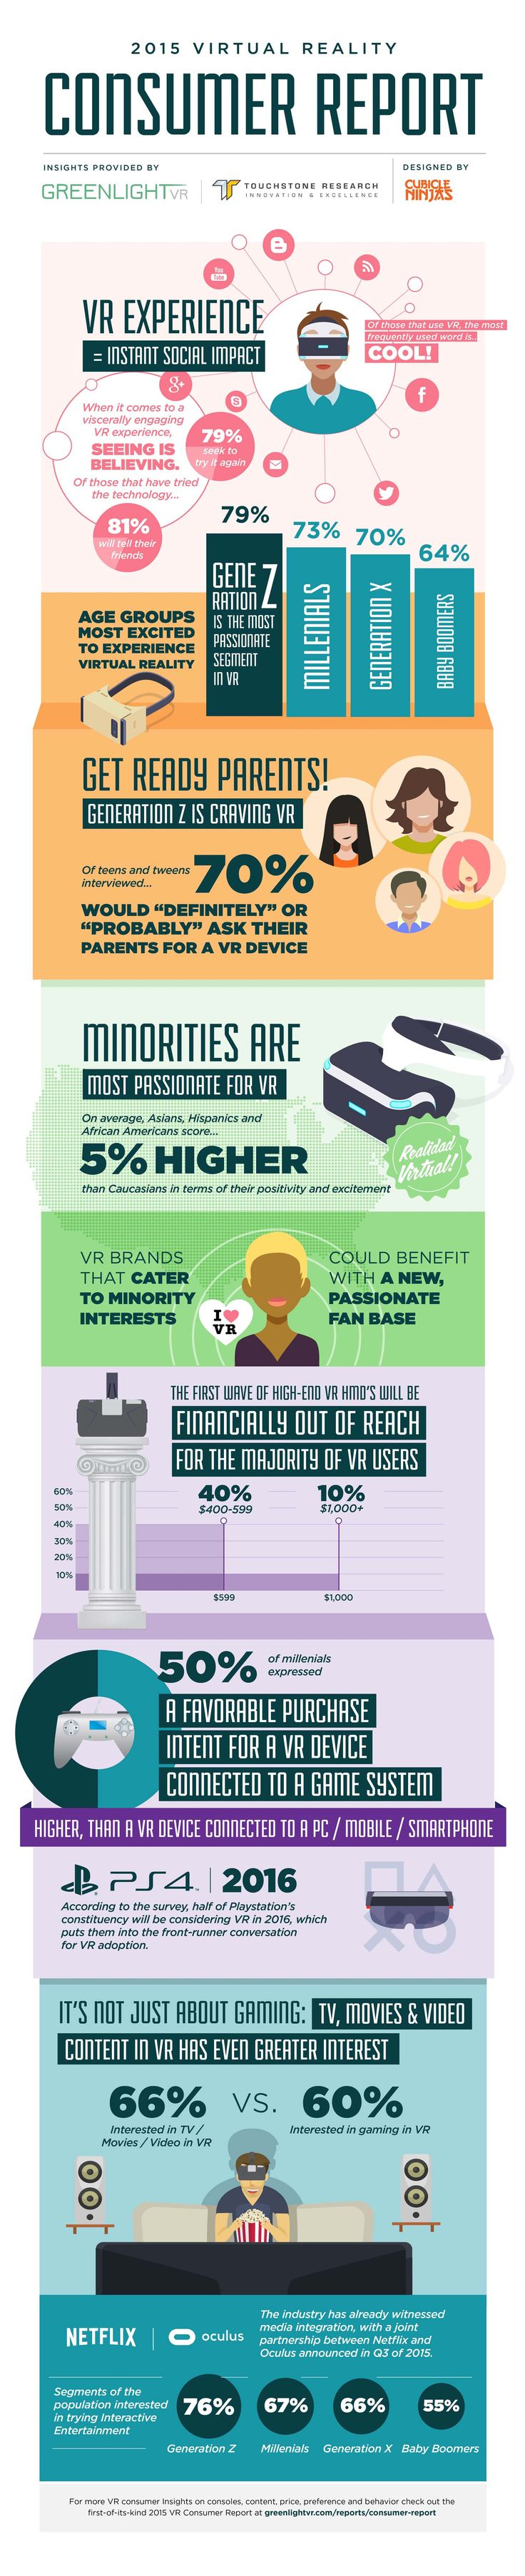 The VR Consumer Report includes analysis from over 2,282 respondents including kids, millennials, and parents, regarding their preferences for virtual reality products and services. Touchstone Research has compiled some of the key insights from the report into a fun infographic.